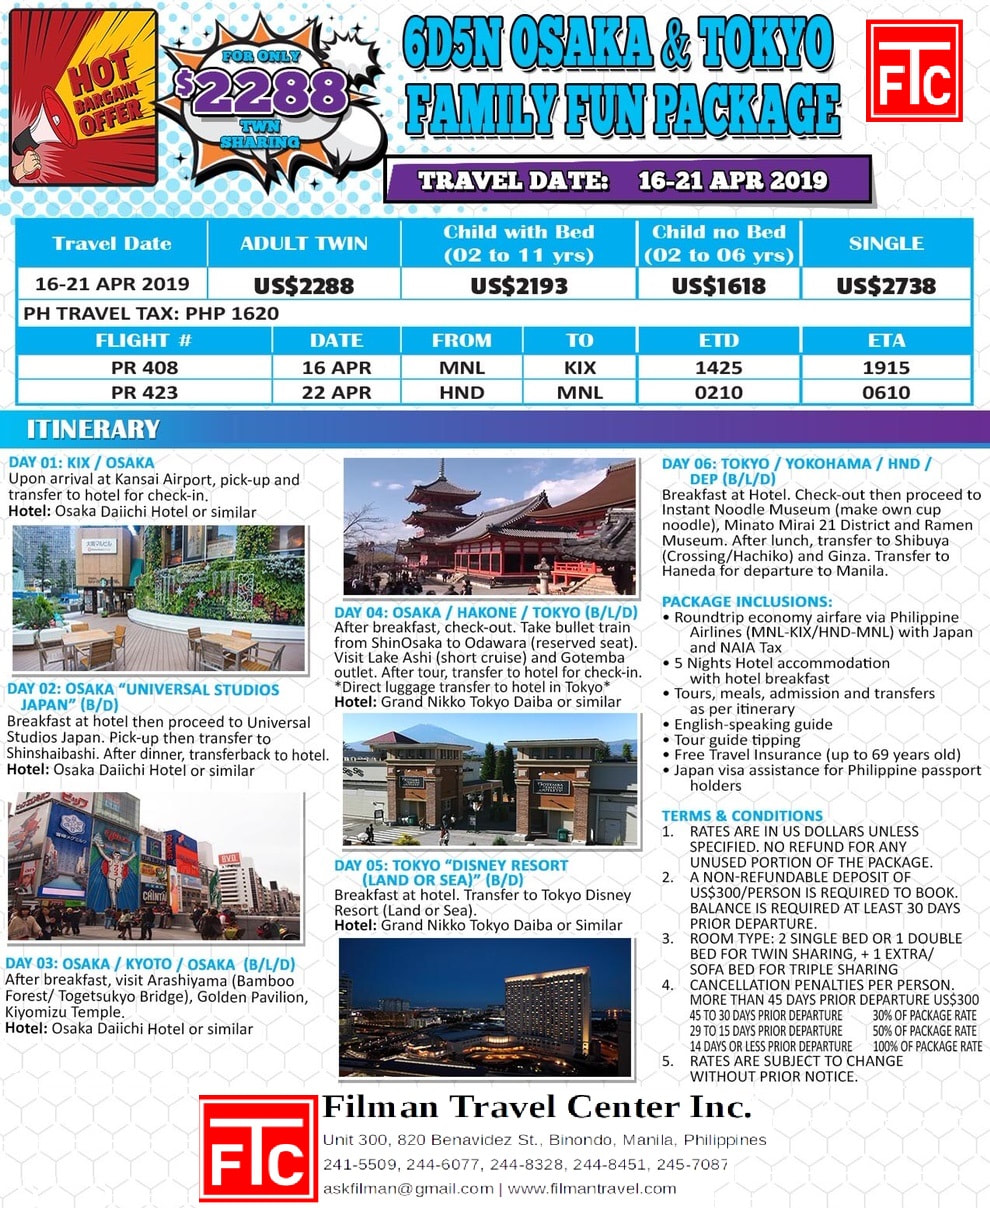 Flyer with details for 6 Days 5 nights osaka tokyo family fun package for holy week $2288 twin sharing, april 16-21 from manila 2019